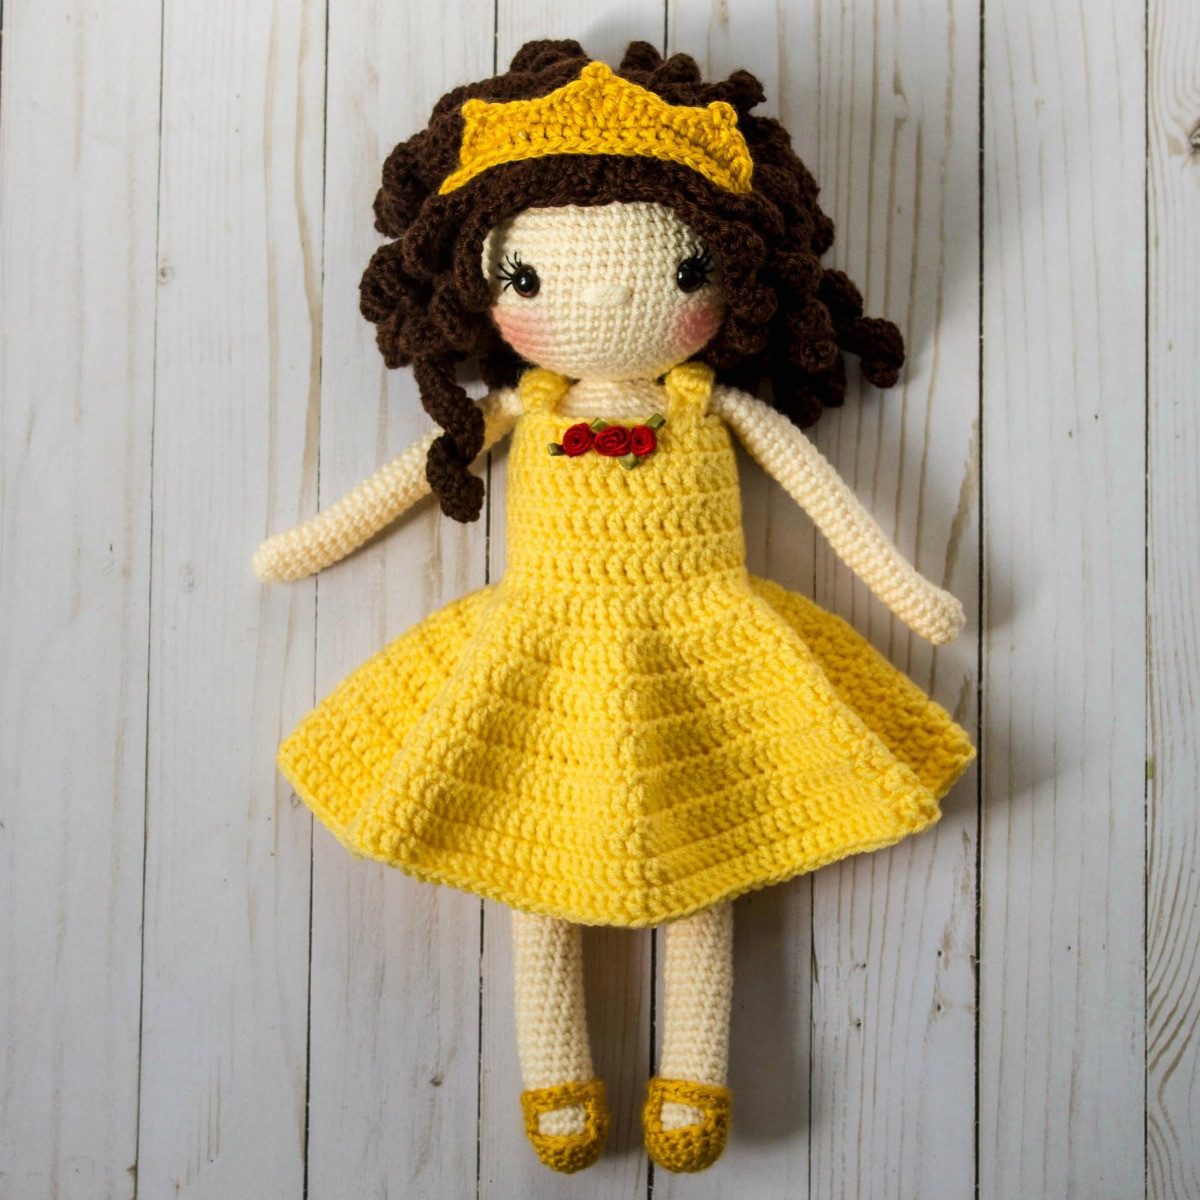 Doll Patterns Beautiful Free Crochet Doll Pattern the Friendly sophie Of Doll Patterns Unique Knitting Patterns Dolls Clothes